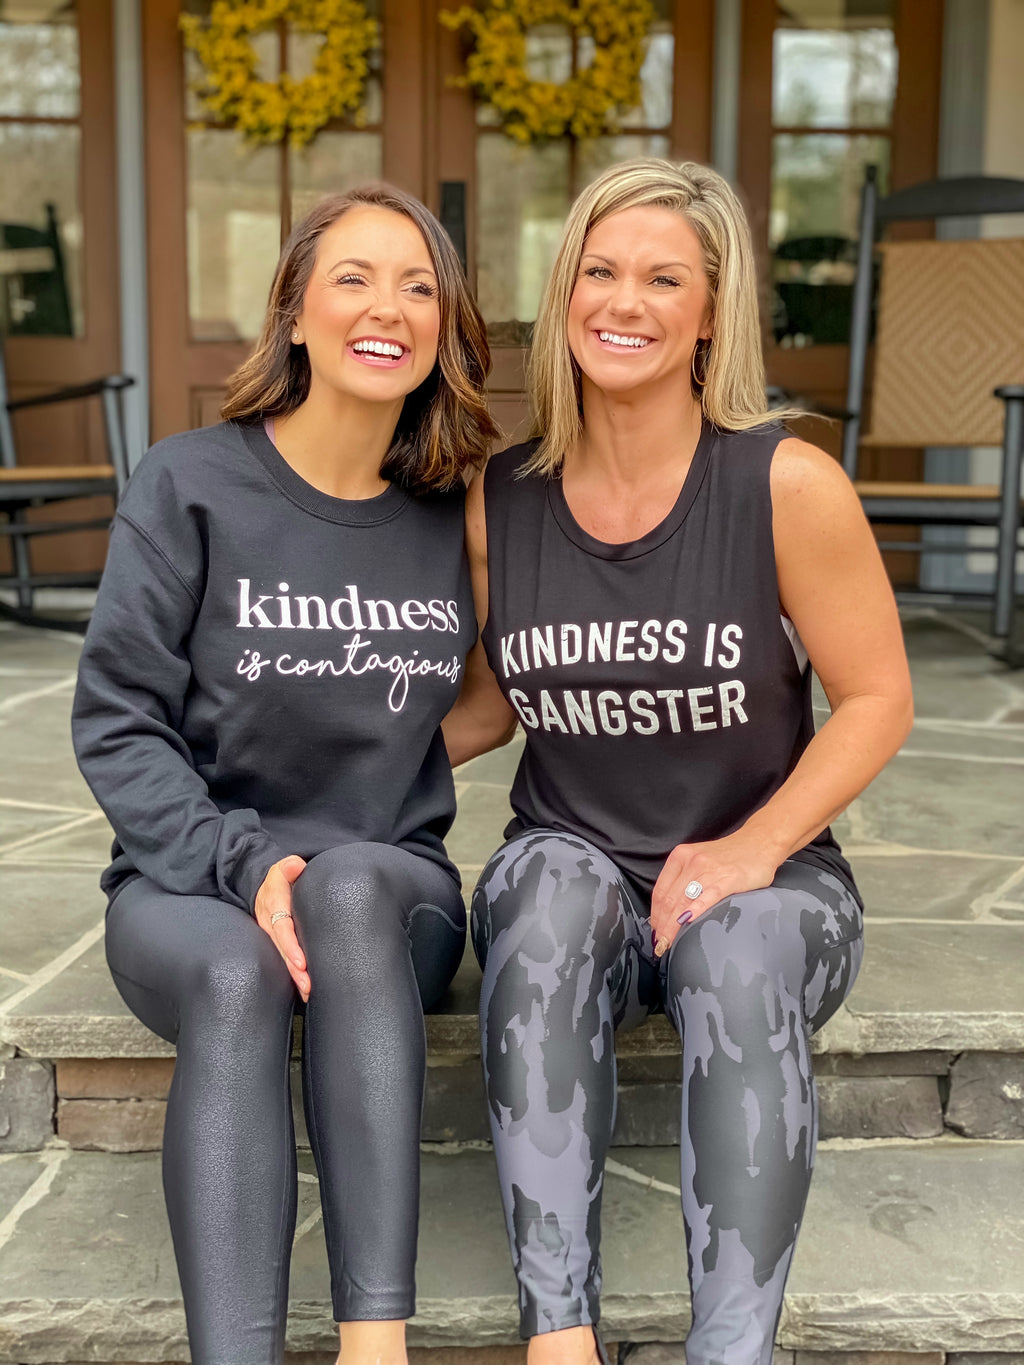 Kindness is Gangster Tank